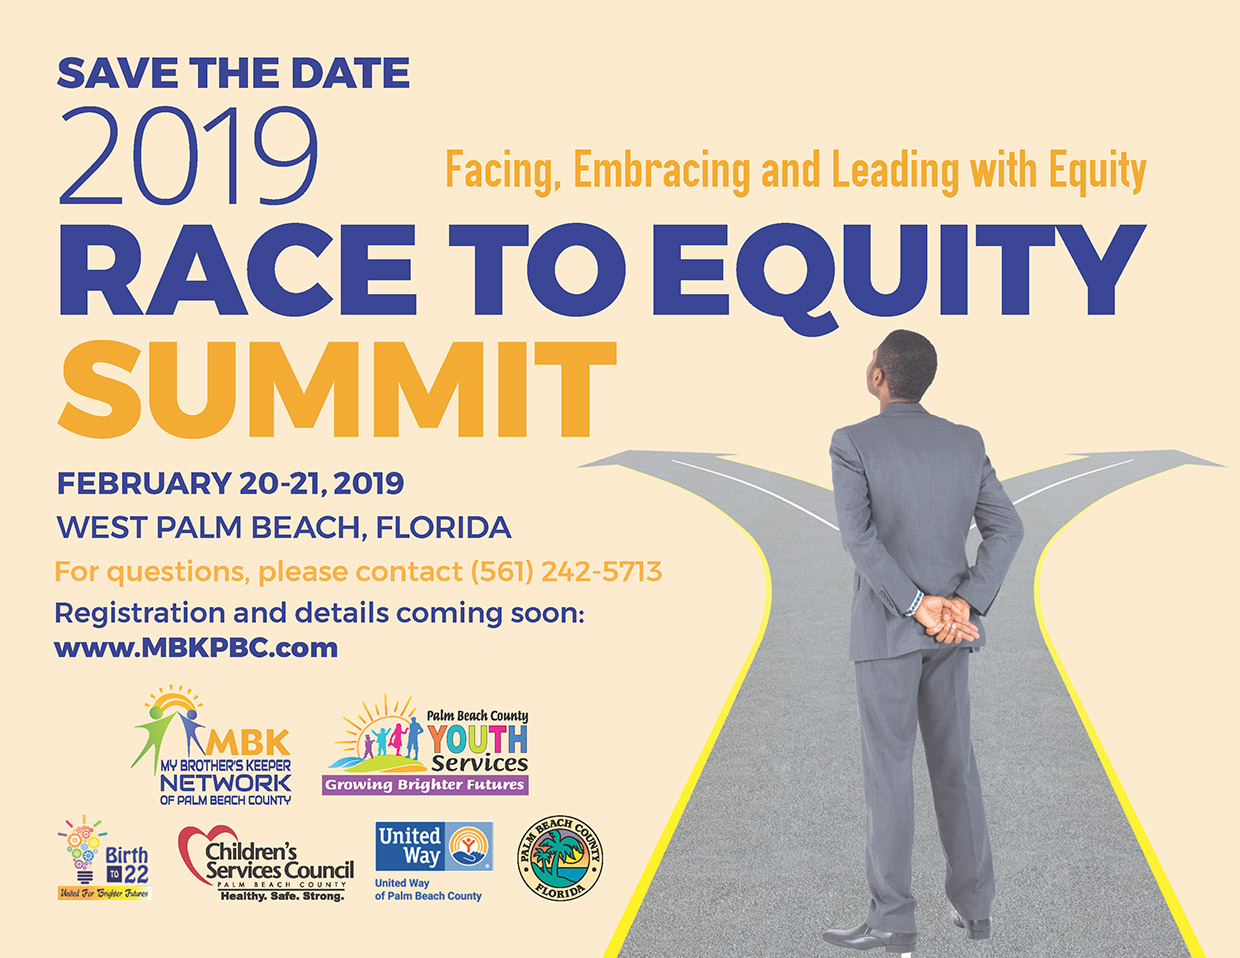 Save the Date, 2019 Race to Equity Summit, February 20-21, 2019